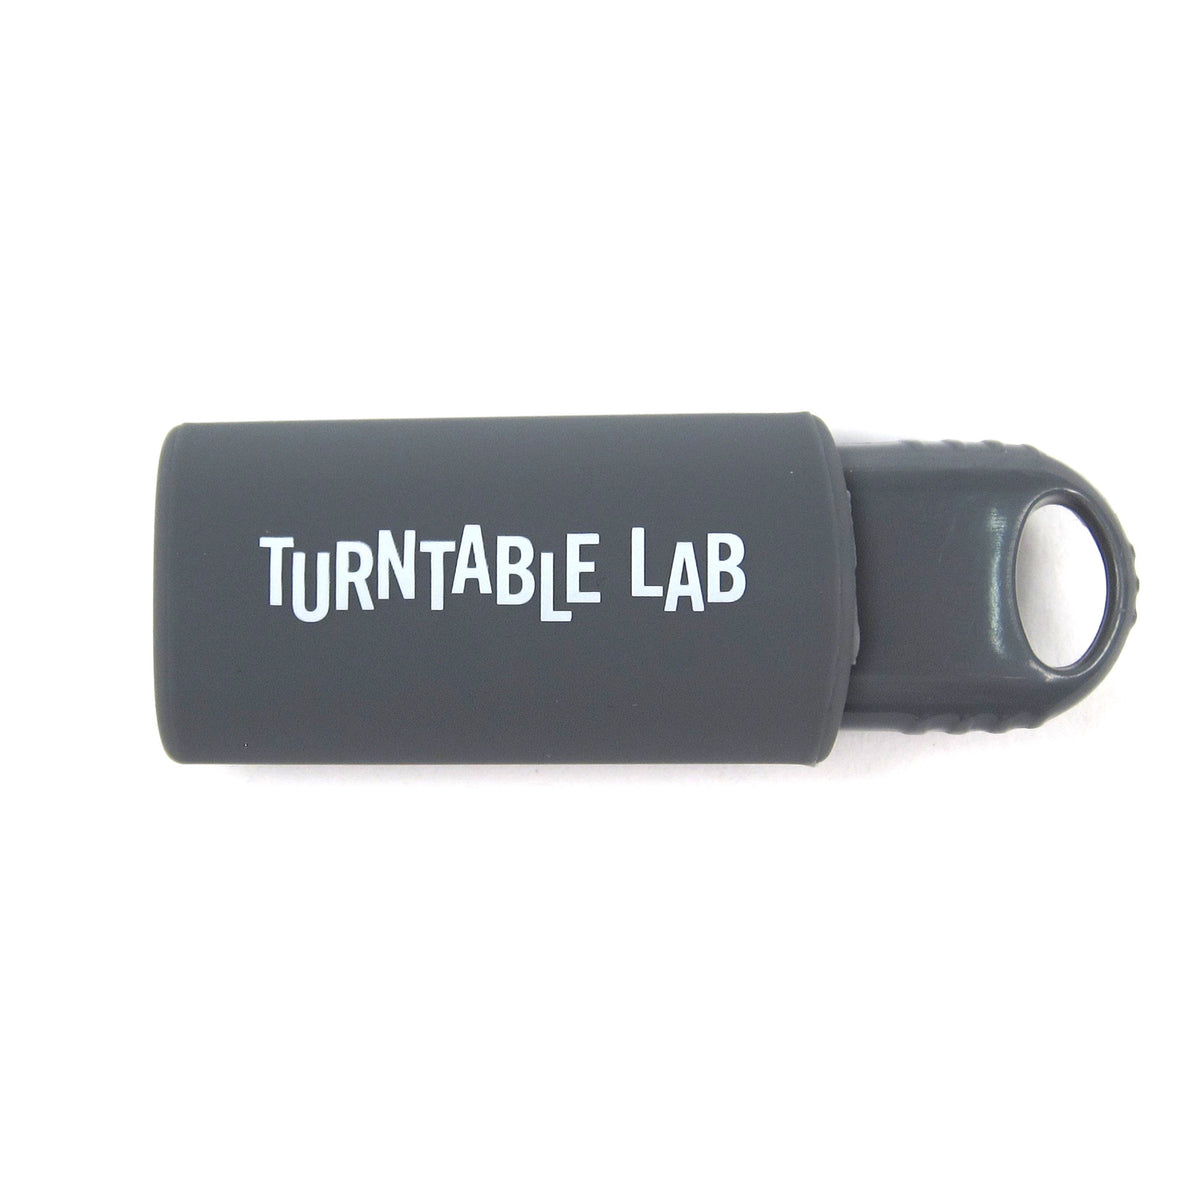 Turntable Lab: Portable USB Flash Drive (16GB)